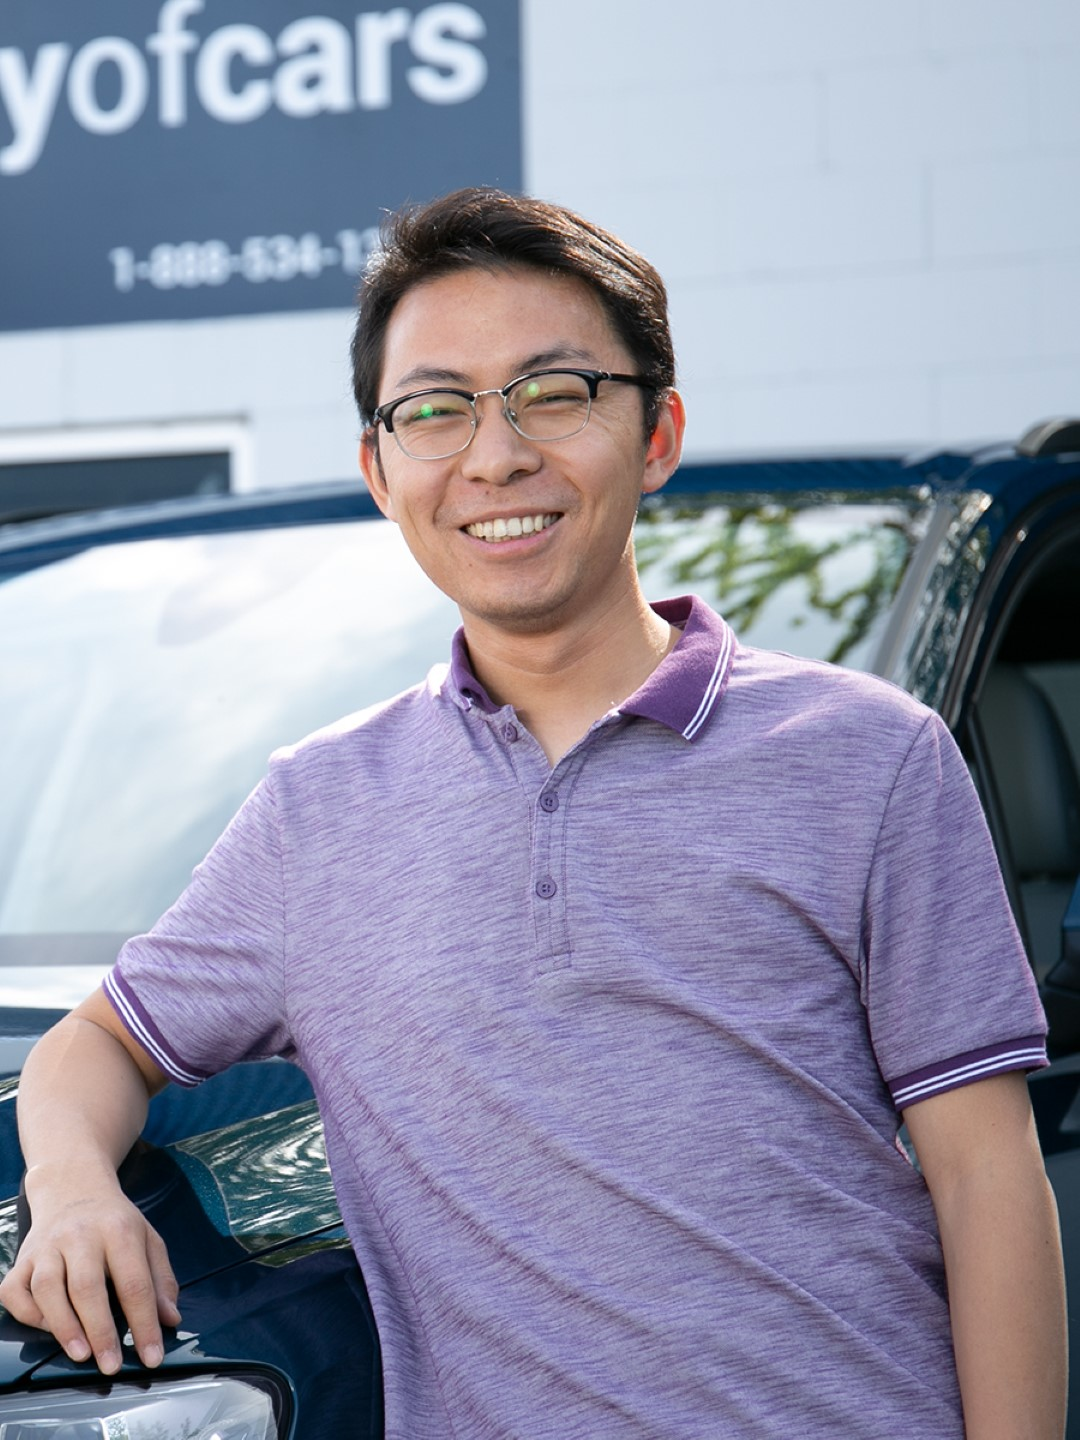 Yang Liu Marketing & Administration at Company of Cars